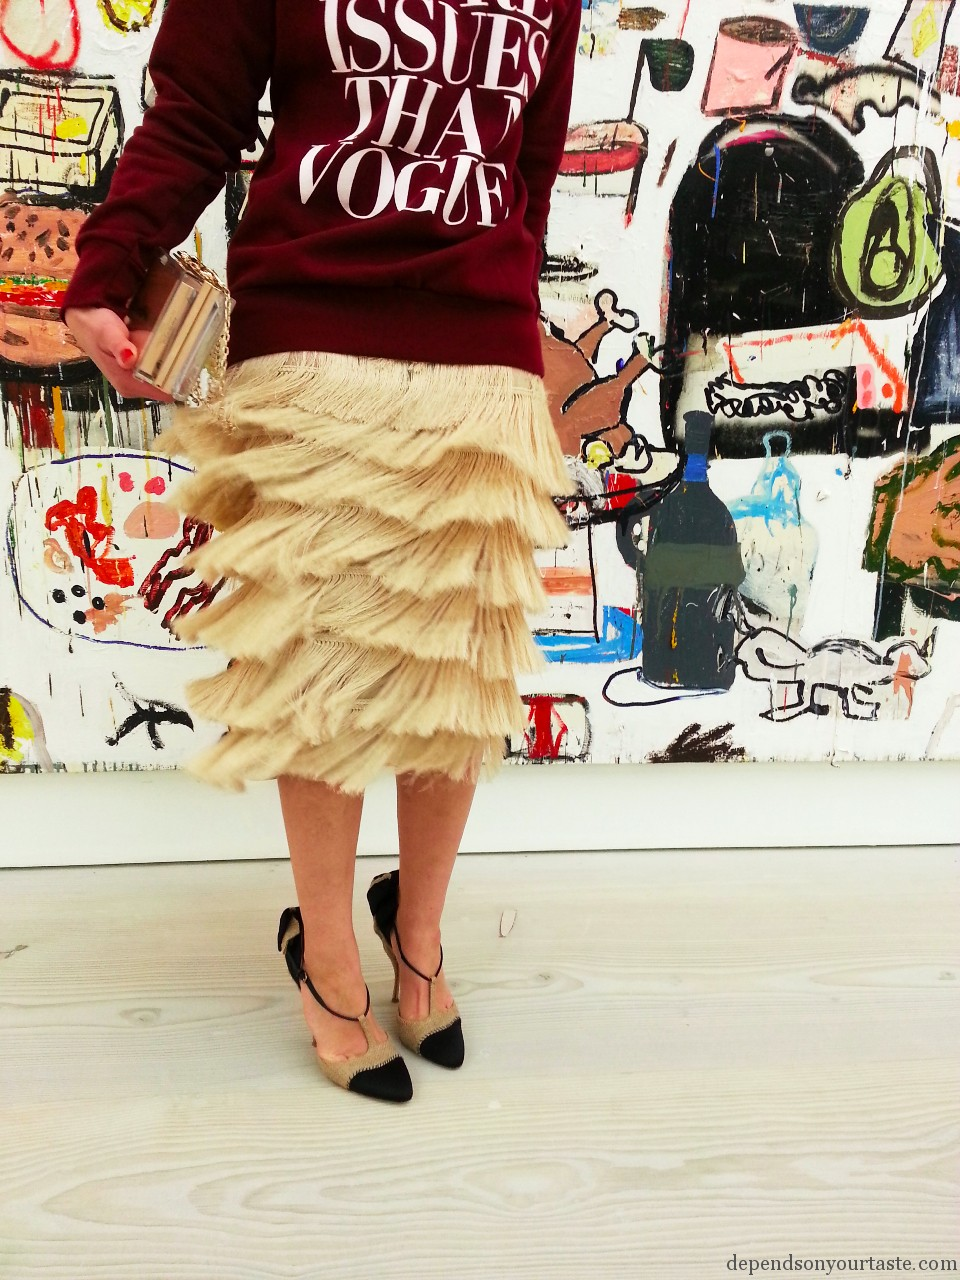 saatchi gallery london fashion shoot, photography aga biegluk, styling wioletta walas ,fashion and art, fringe skirt , hm trend pencil beige skirt, more issues than vogue,,